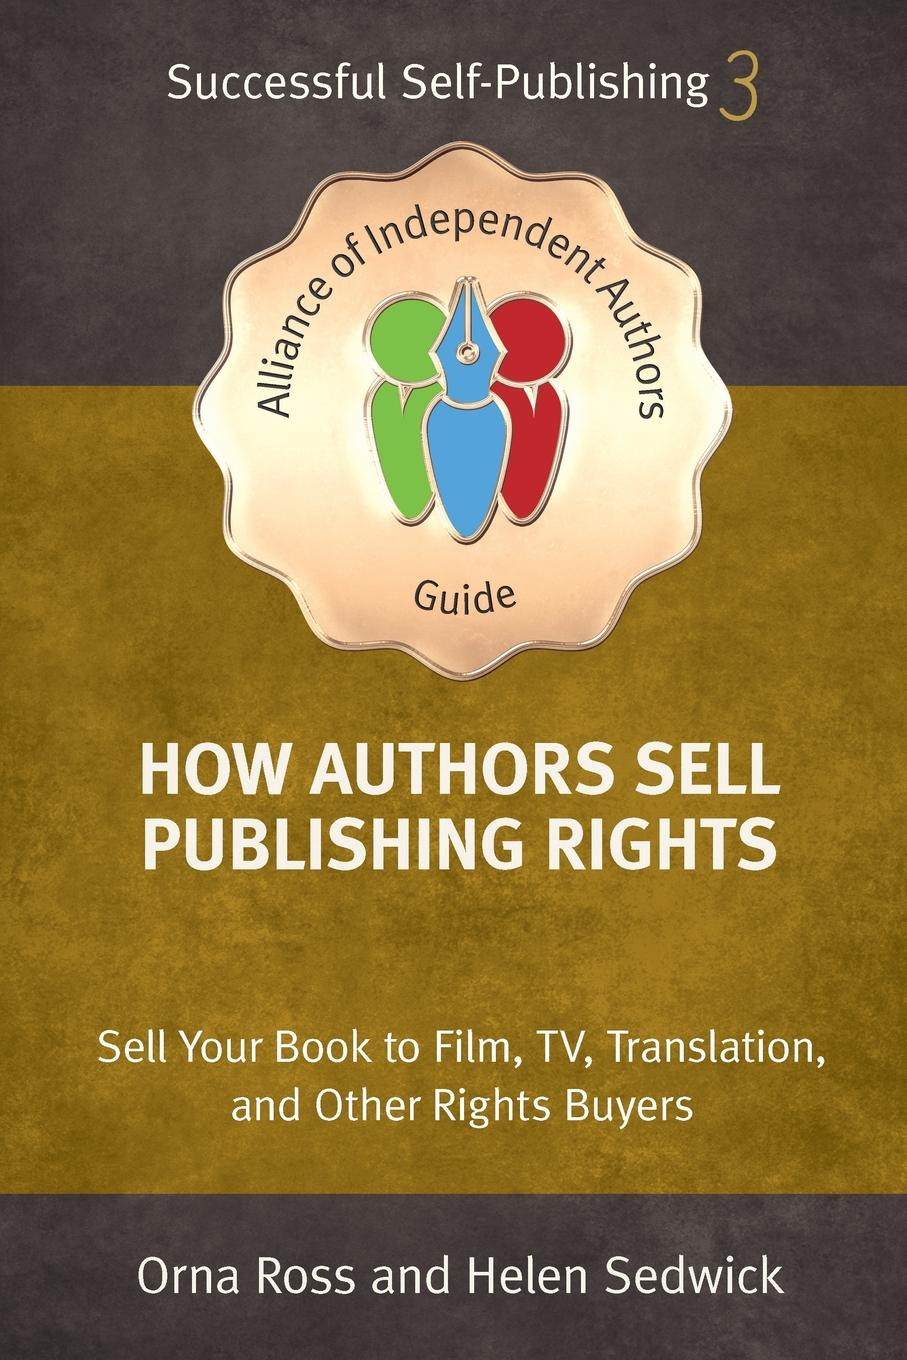 Orna Ross, Helen Sedwick How Authors Sell Publishing Rights. Sell Your Book to Film, TV, Translation, and Other Rights Buyers john klymshyn how to sell without being a jerk the foolproof approach to the world s second oldest profession